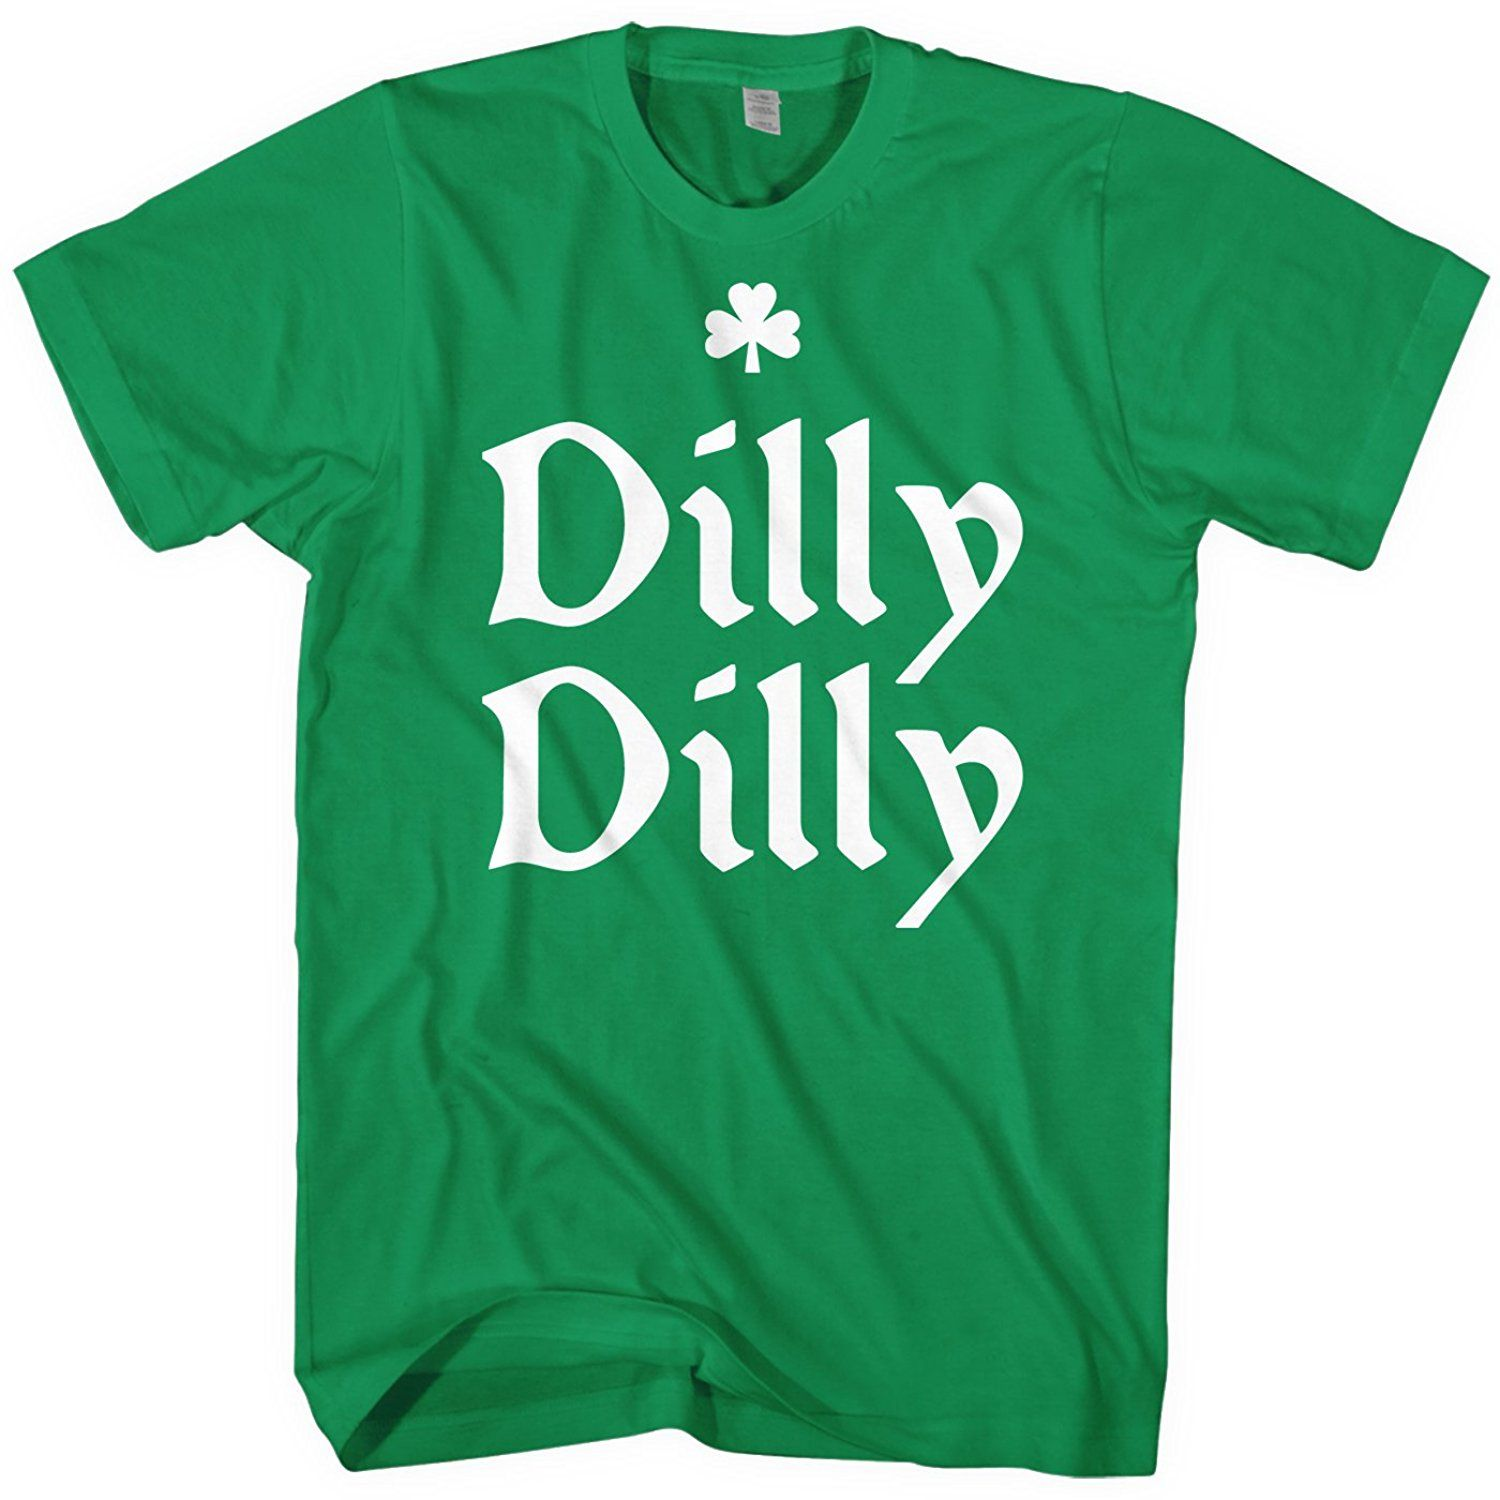 0bef2d34df275 Amazon.com  Mixtbrand Men s Dilly Dilly ST. Patrick s Day T-Shirt  Clothing